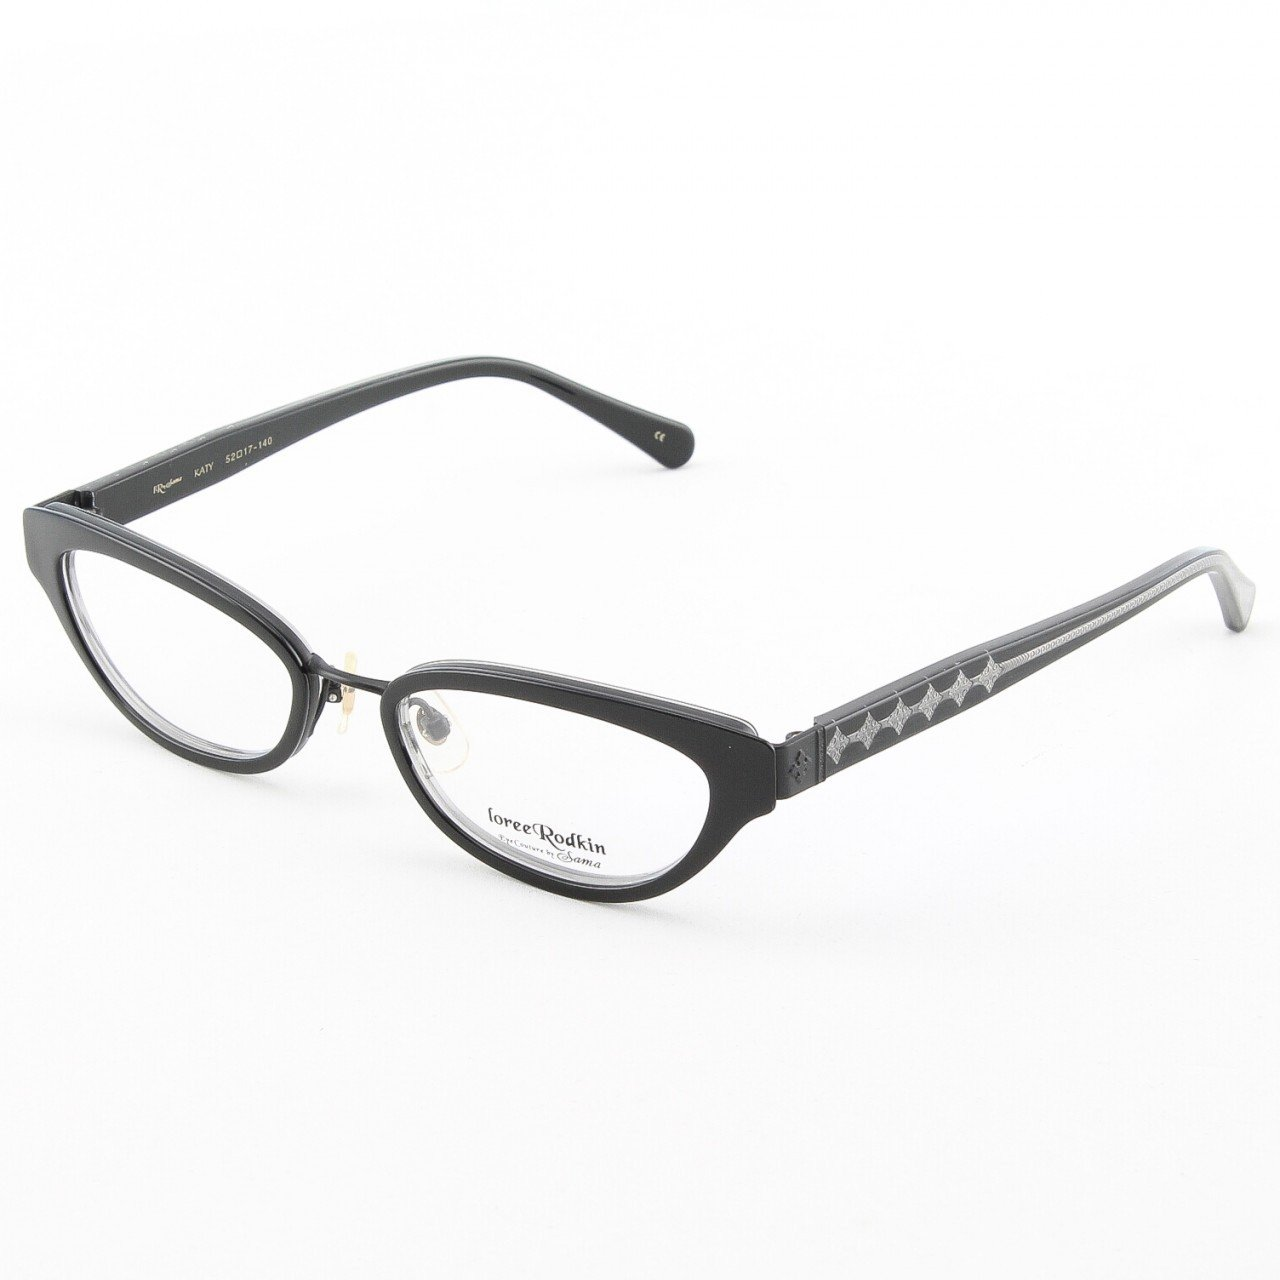 Loree Rodkin Katy Eyeglasses Onyx w/ Clear Lenses, Plastic Inserts and Decorative Temple Core